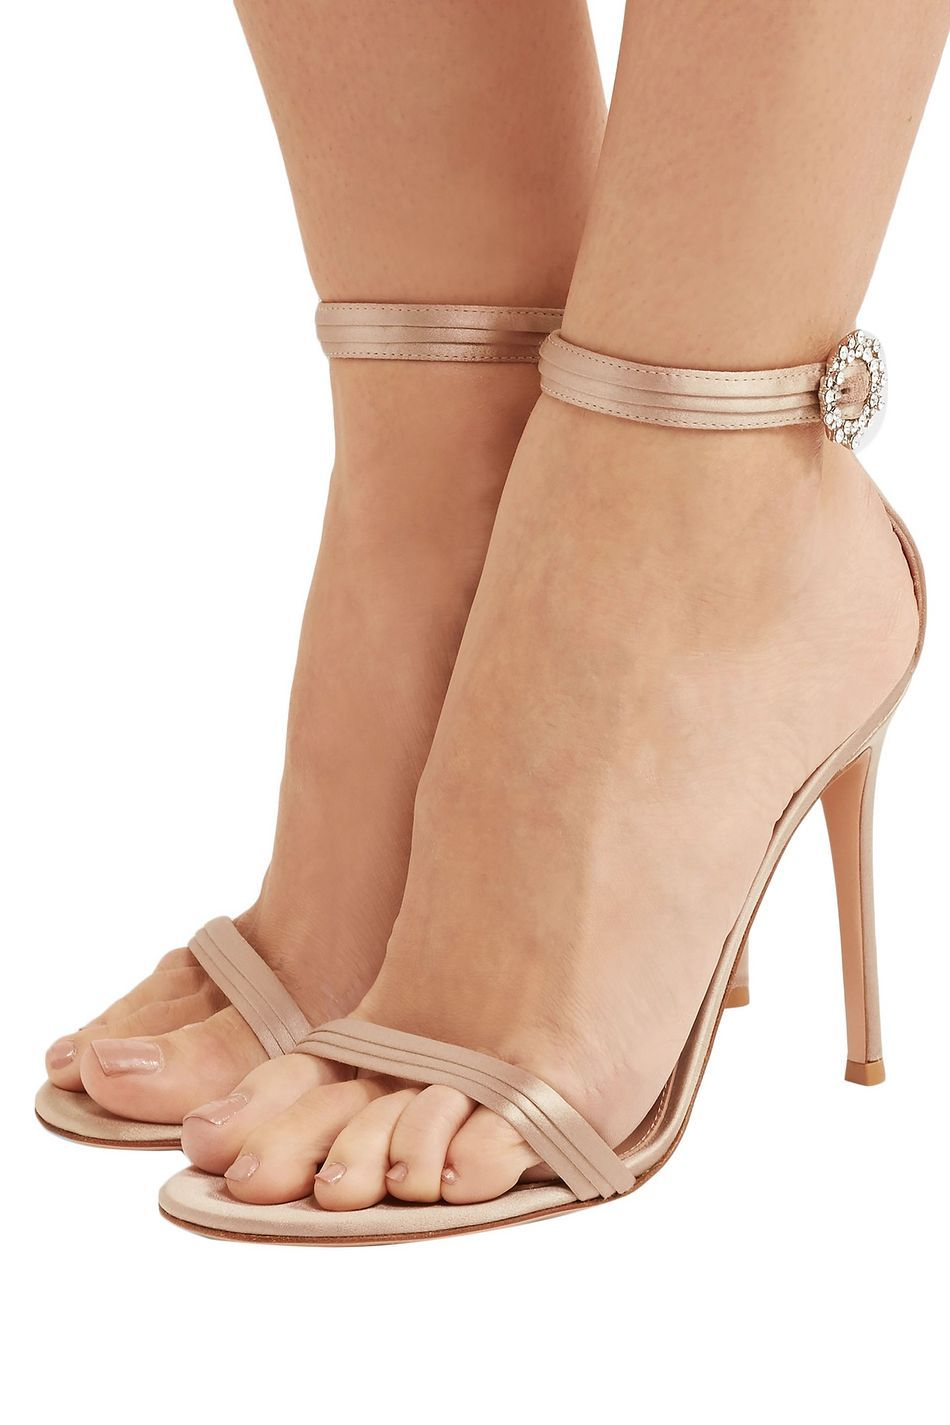 Neutral Portofino 100 Crystal Embellished Satin Sandals Sale Up To 70 Off The Outnet Gianvito Rossi In 2020 Sandals For Sale Designer High Heels Barbie Shoes